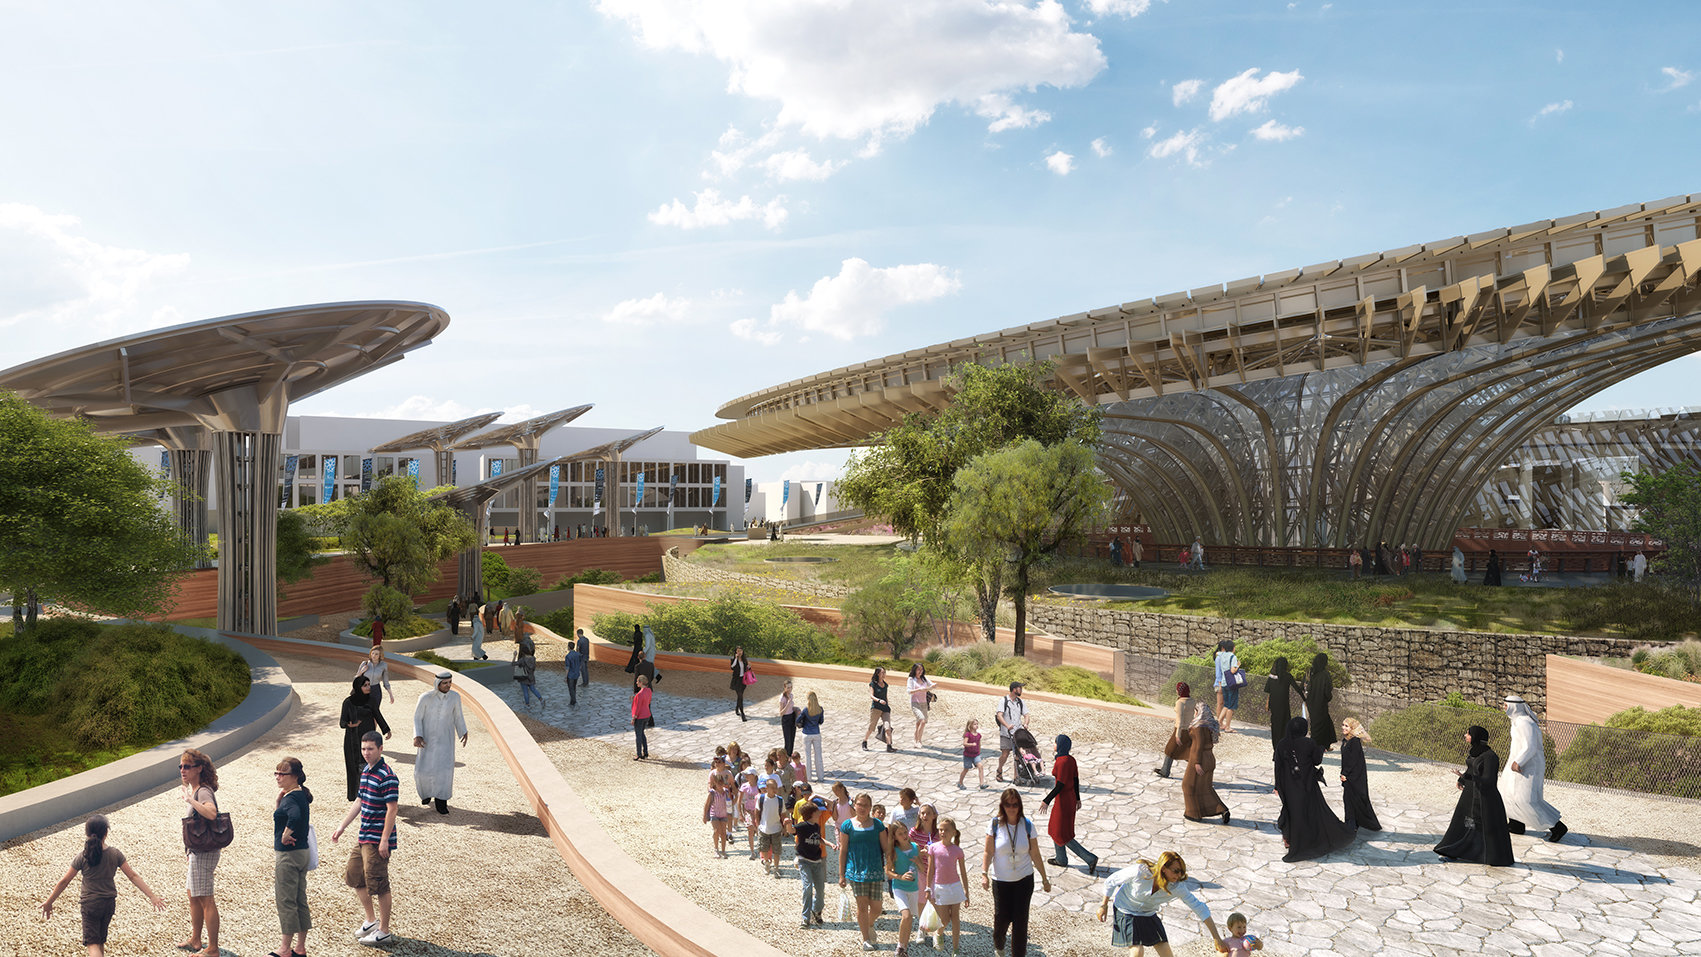 The postponement of Dubai Expo 2020 has the necessary support from most participating countries